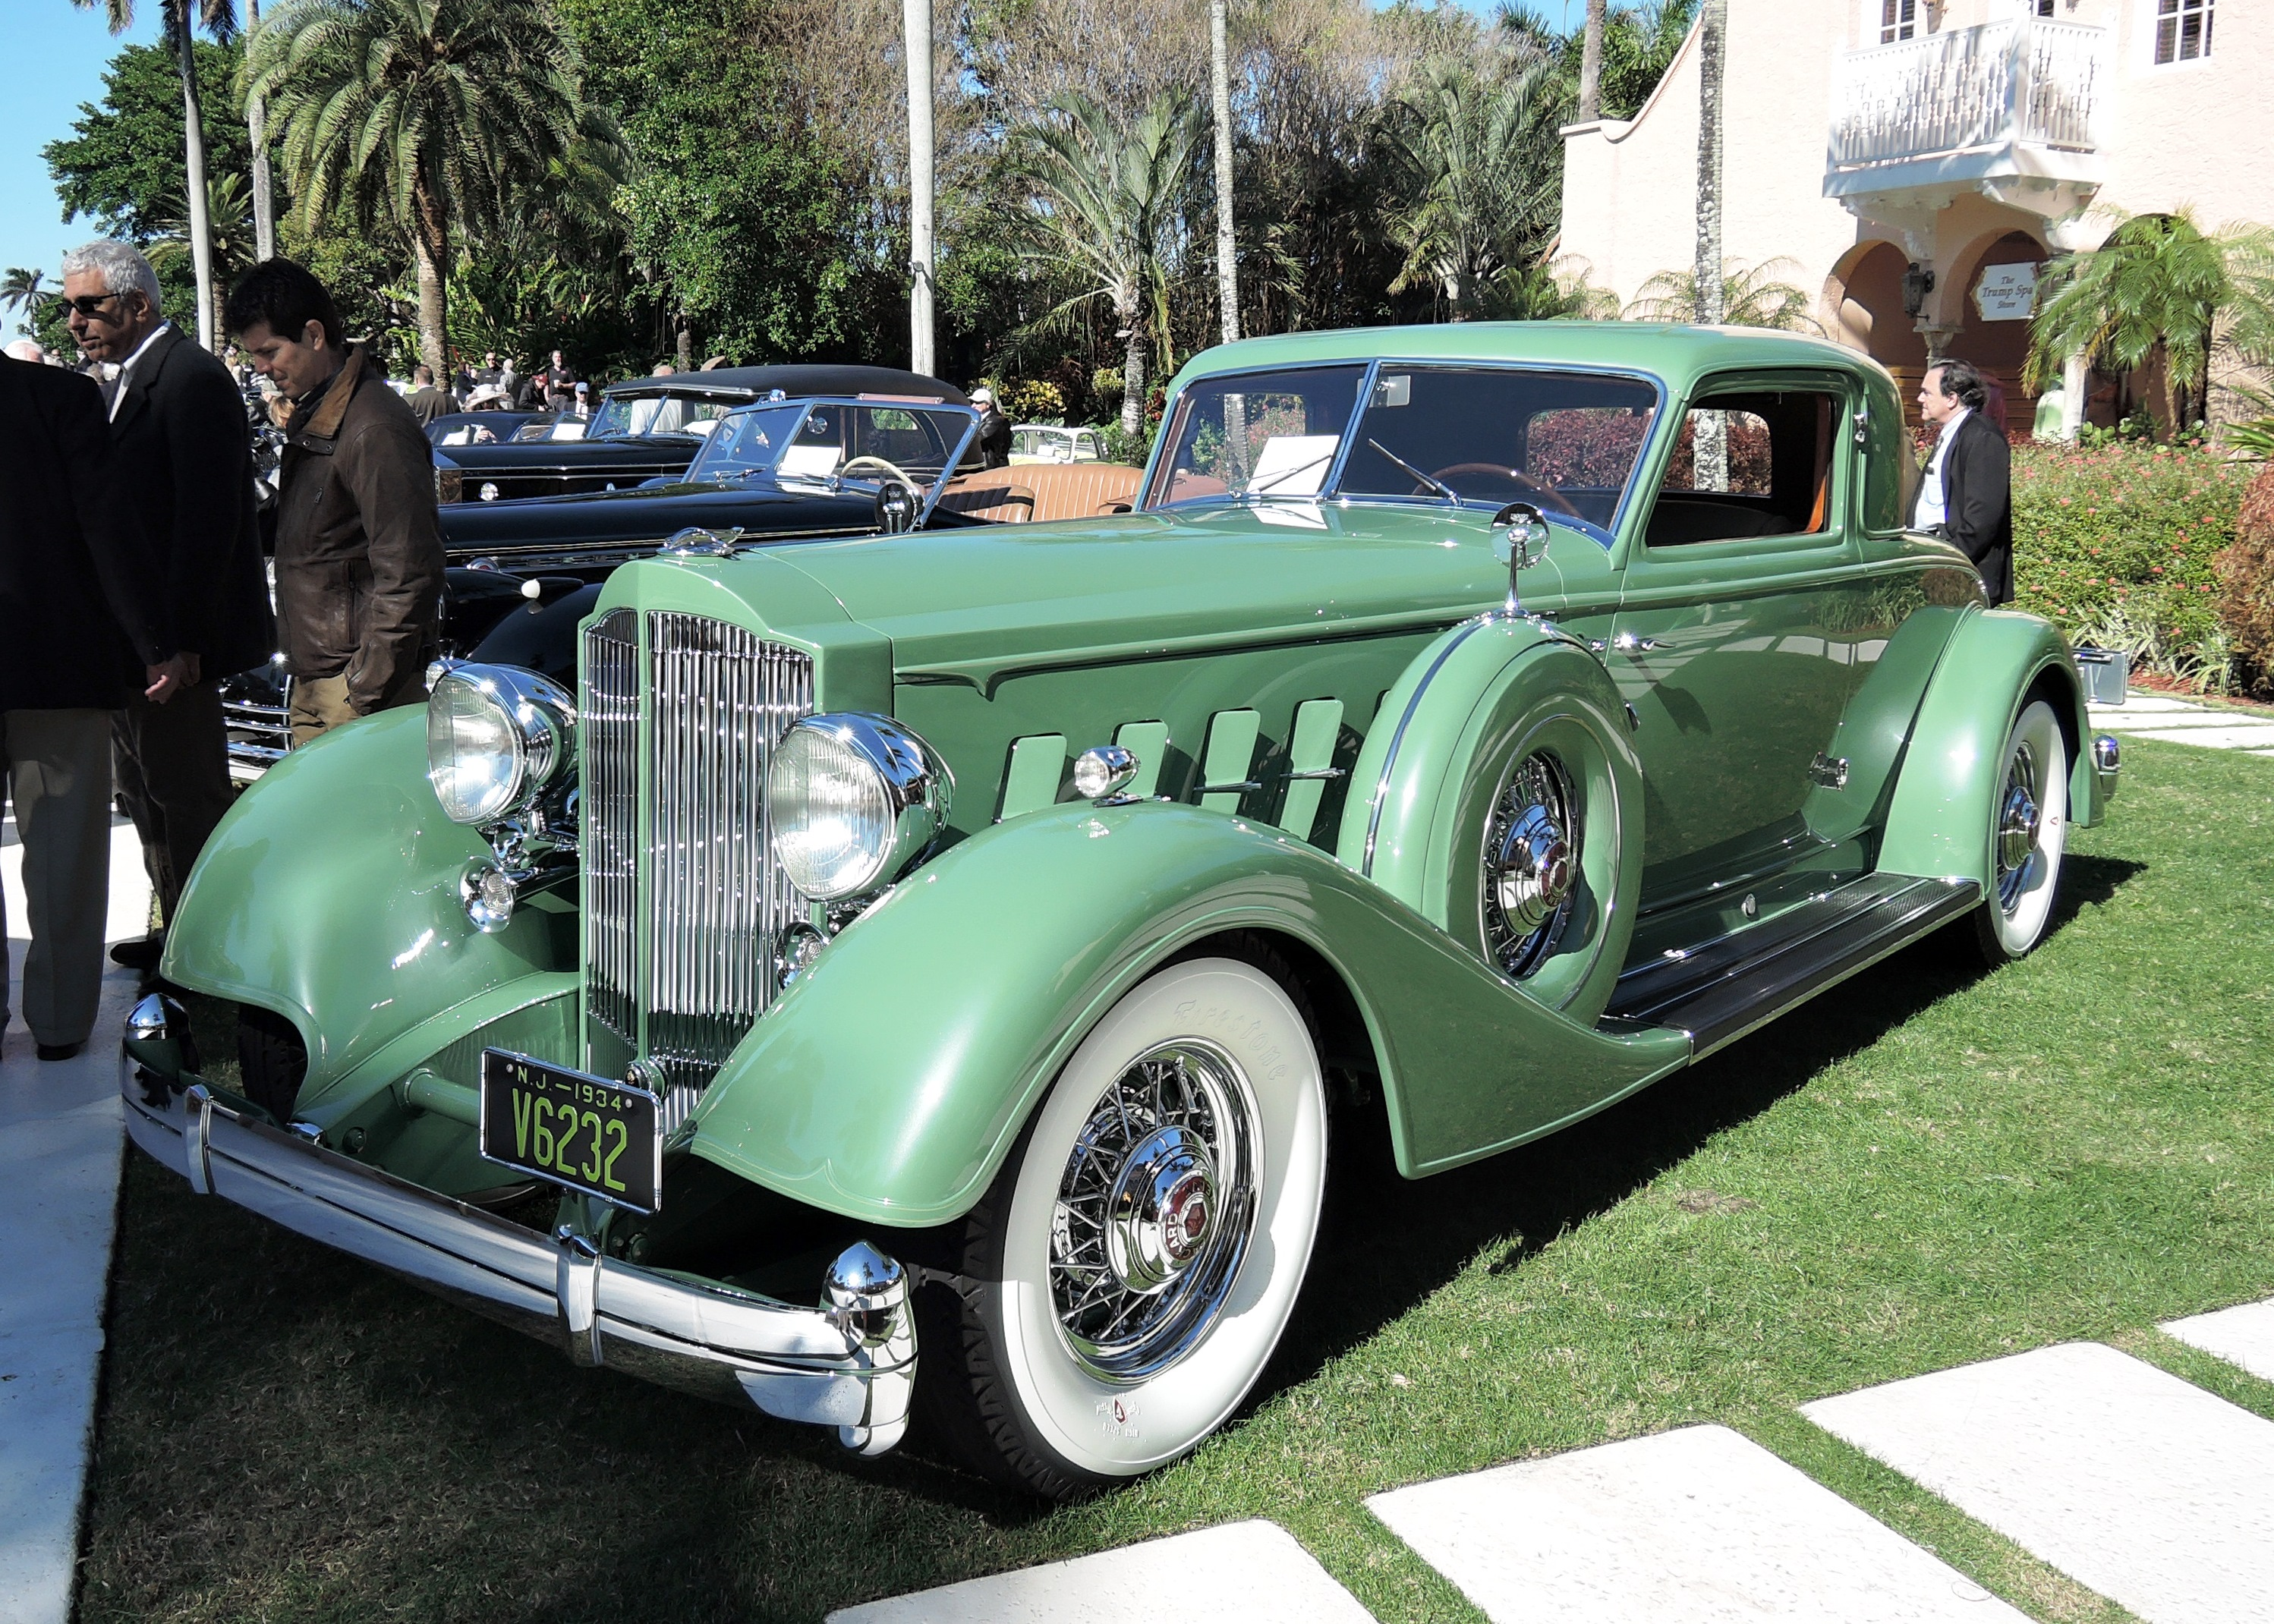 green 1934 Packard 12 Dietrich - mar-a-lago